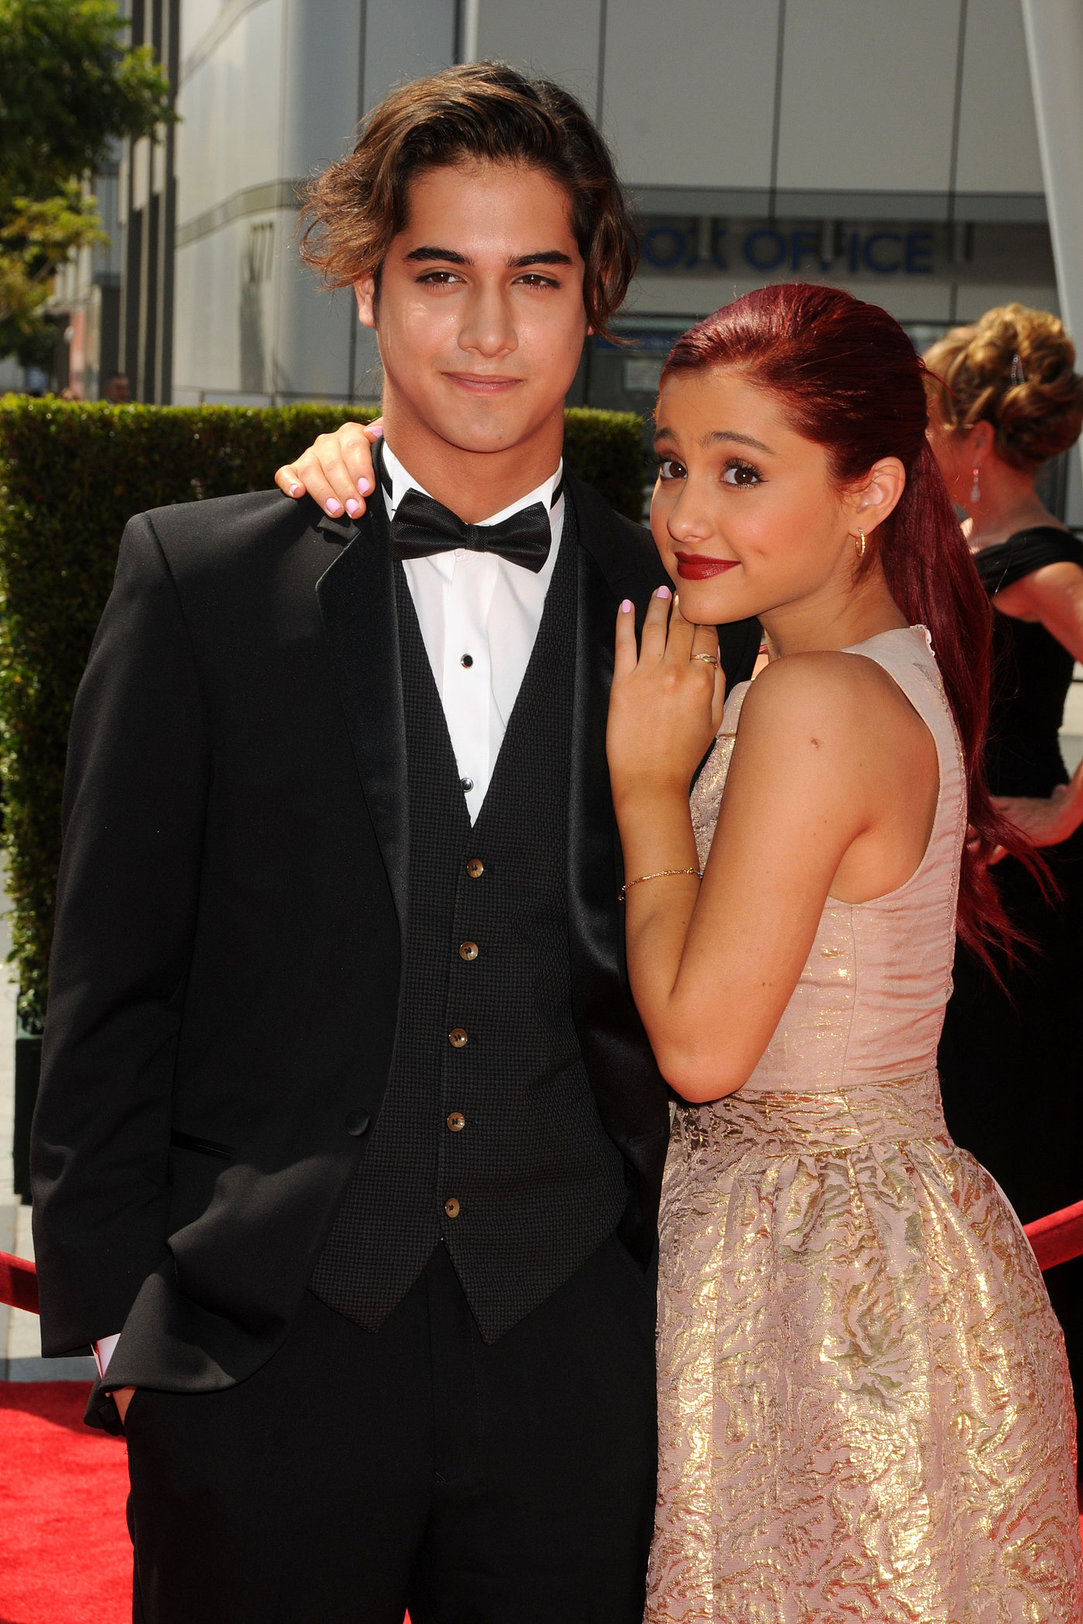 Pictures of ariana grande and josh hutcherson